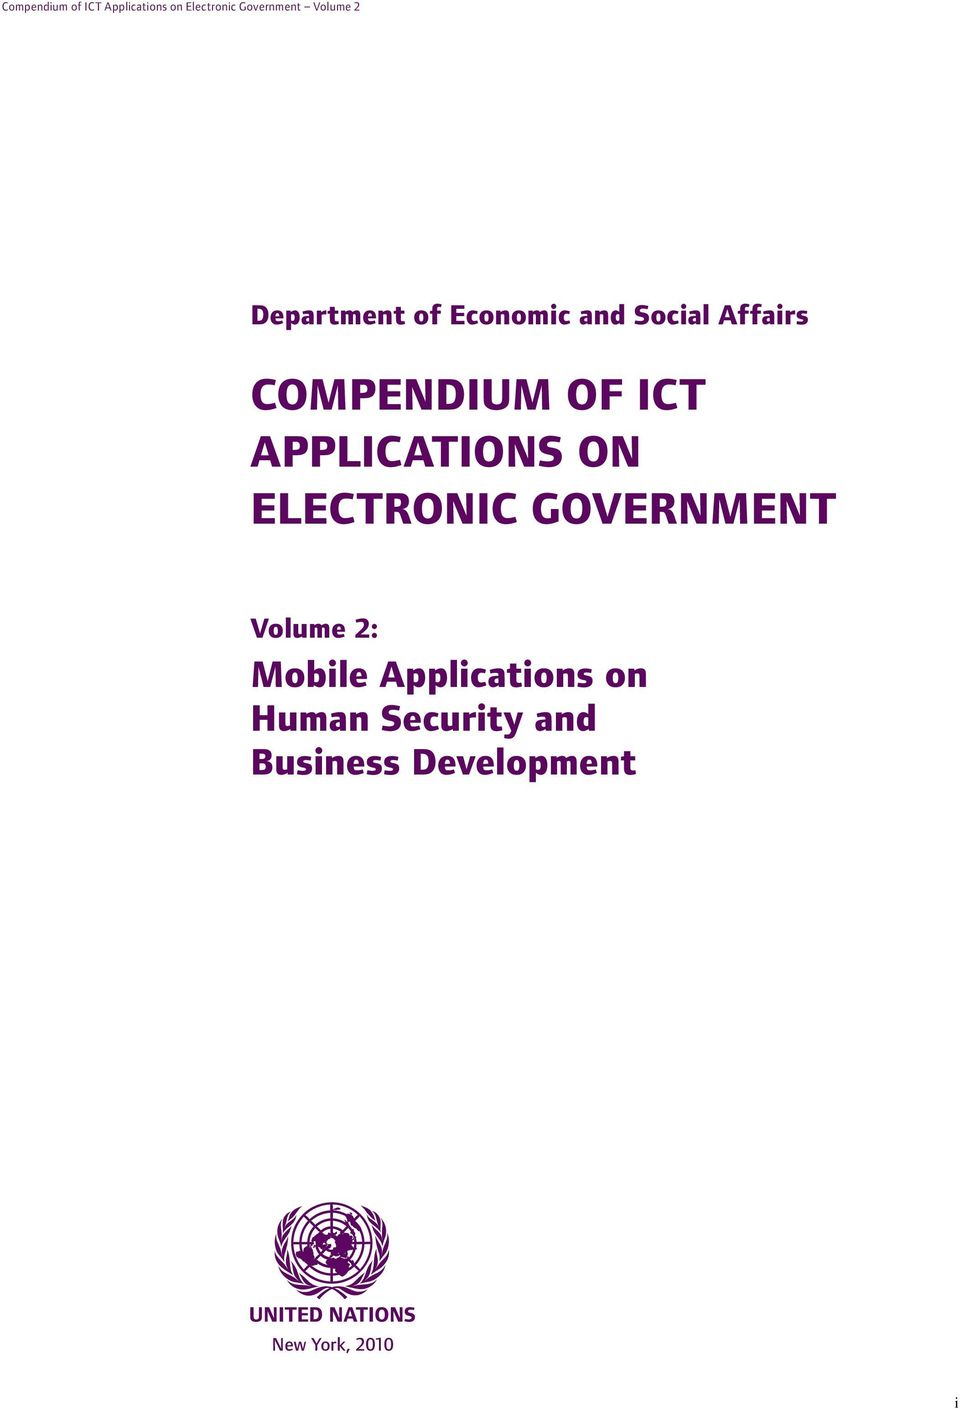 APPLICATIONS ON ELECTRONIC GOVERNMENT Volume 2: Mobile